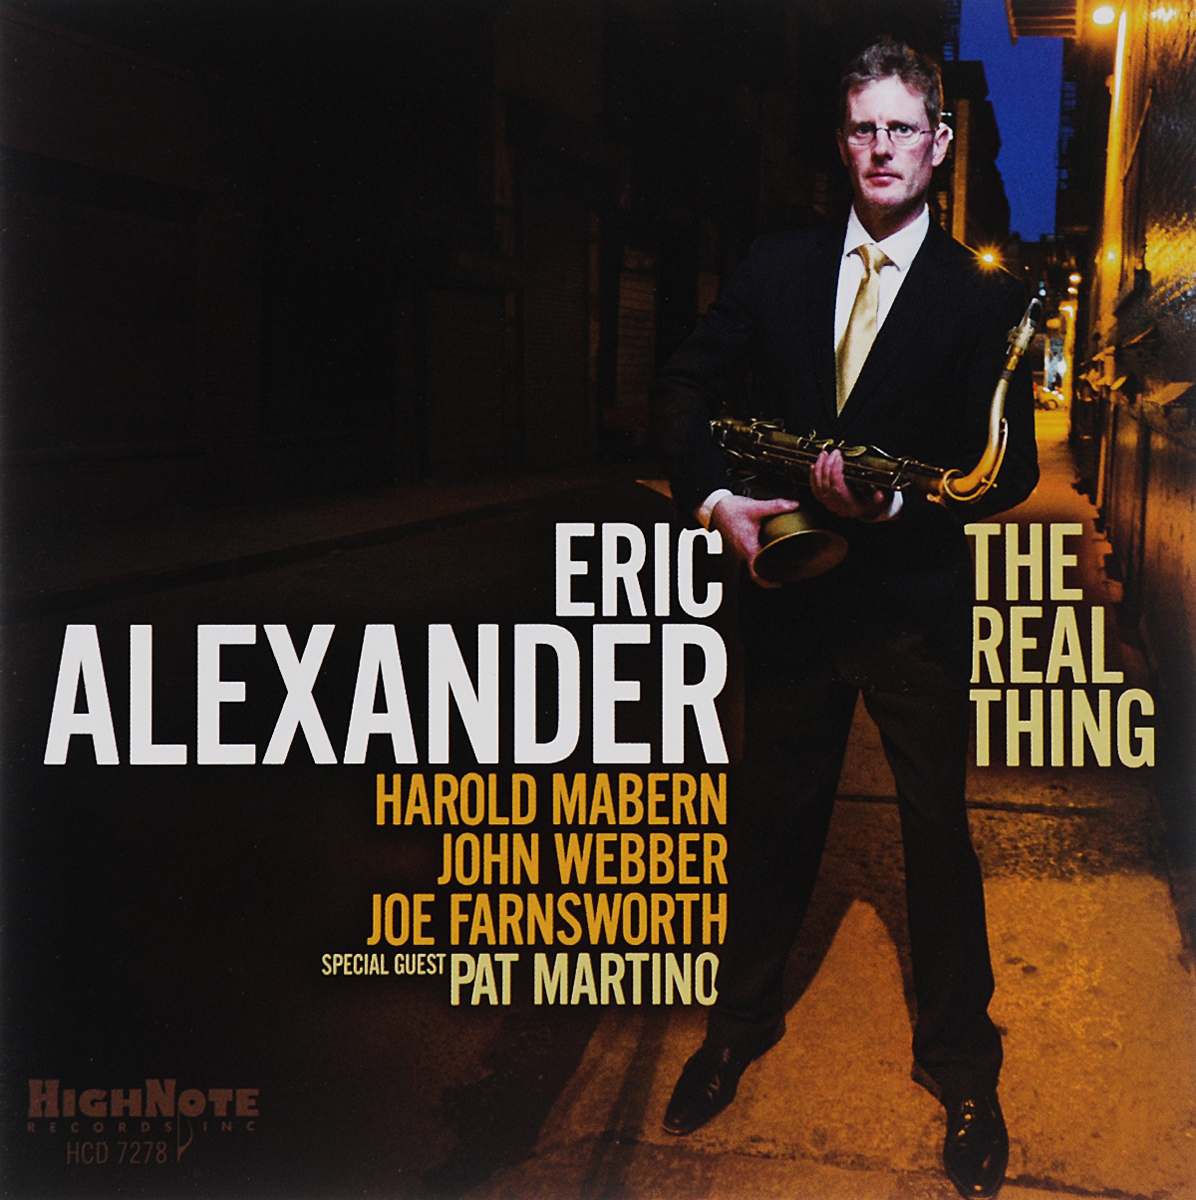 Eric Alexander. The Real Thing